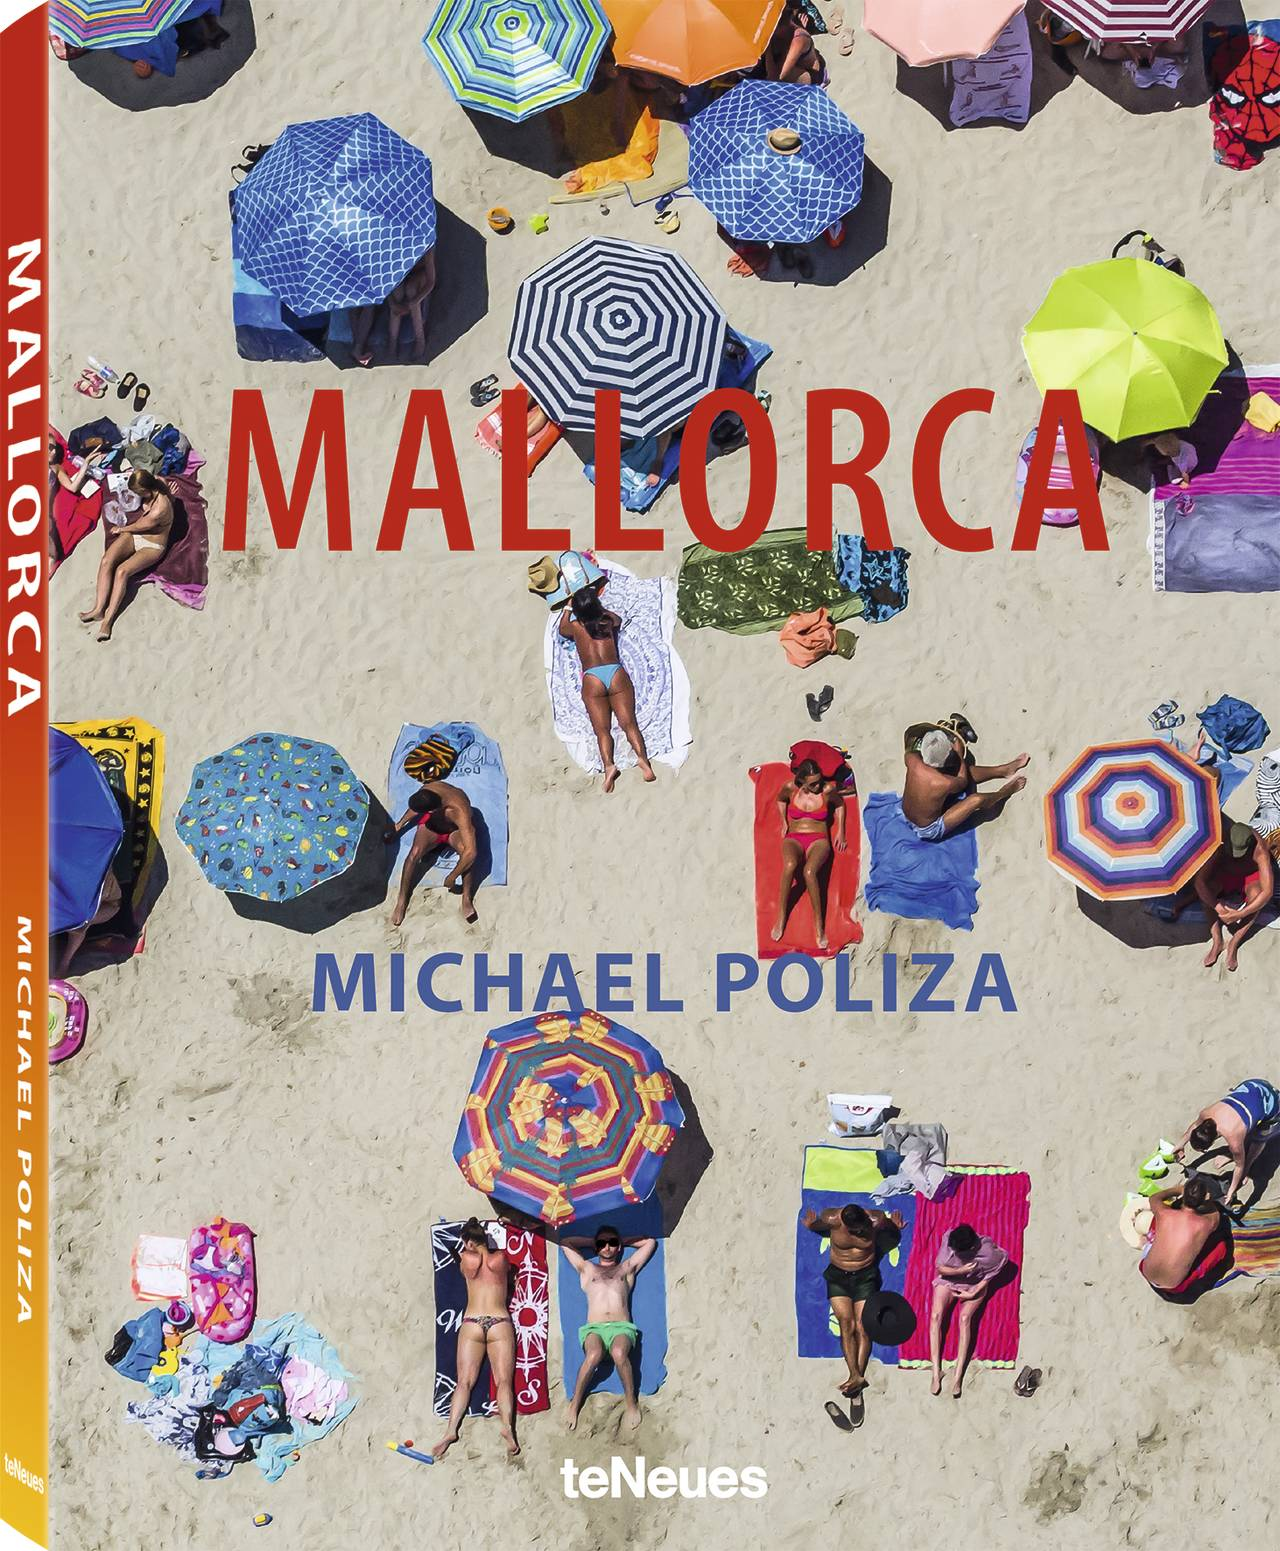 © MALLORCA by Michael Poliza, published by teNeues, www.teneues.com, Cala sa Nau, Felanitx, Photo © 2017 Michael Poliza. All rights reserved. www.michaelpoliza.com/travel